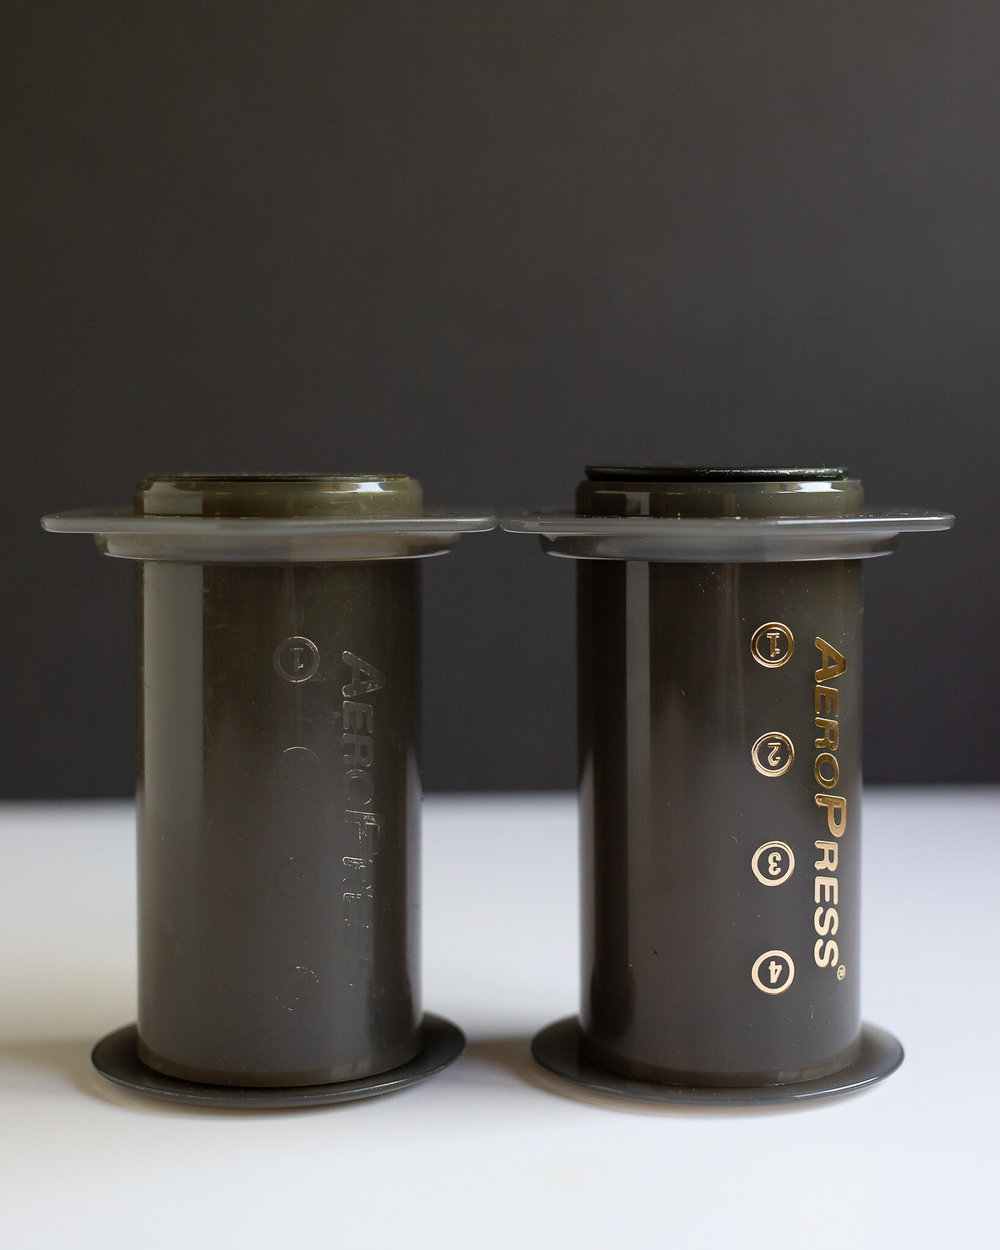 Off-Brand gasket (left) compared to brand new Aerobie Aeropress gasket (right)